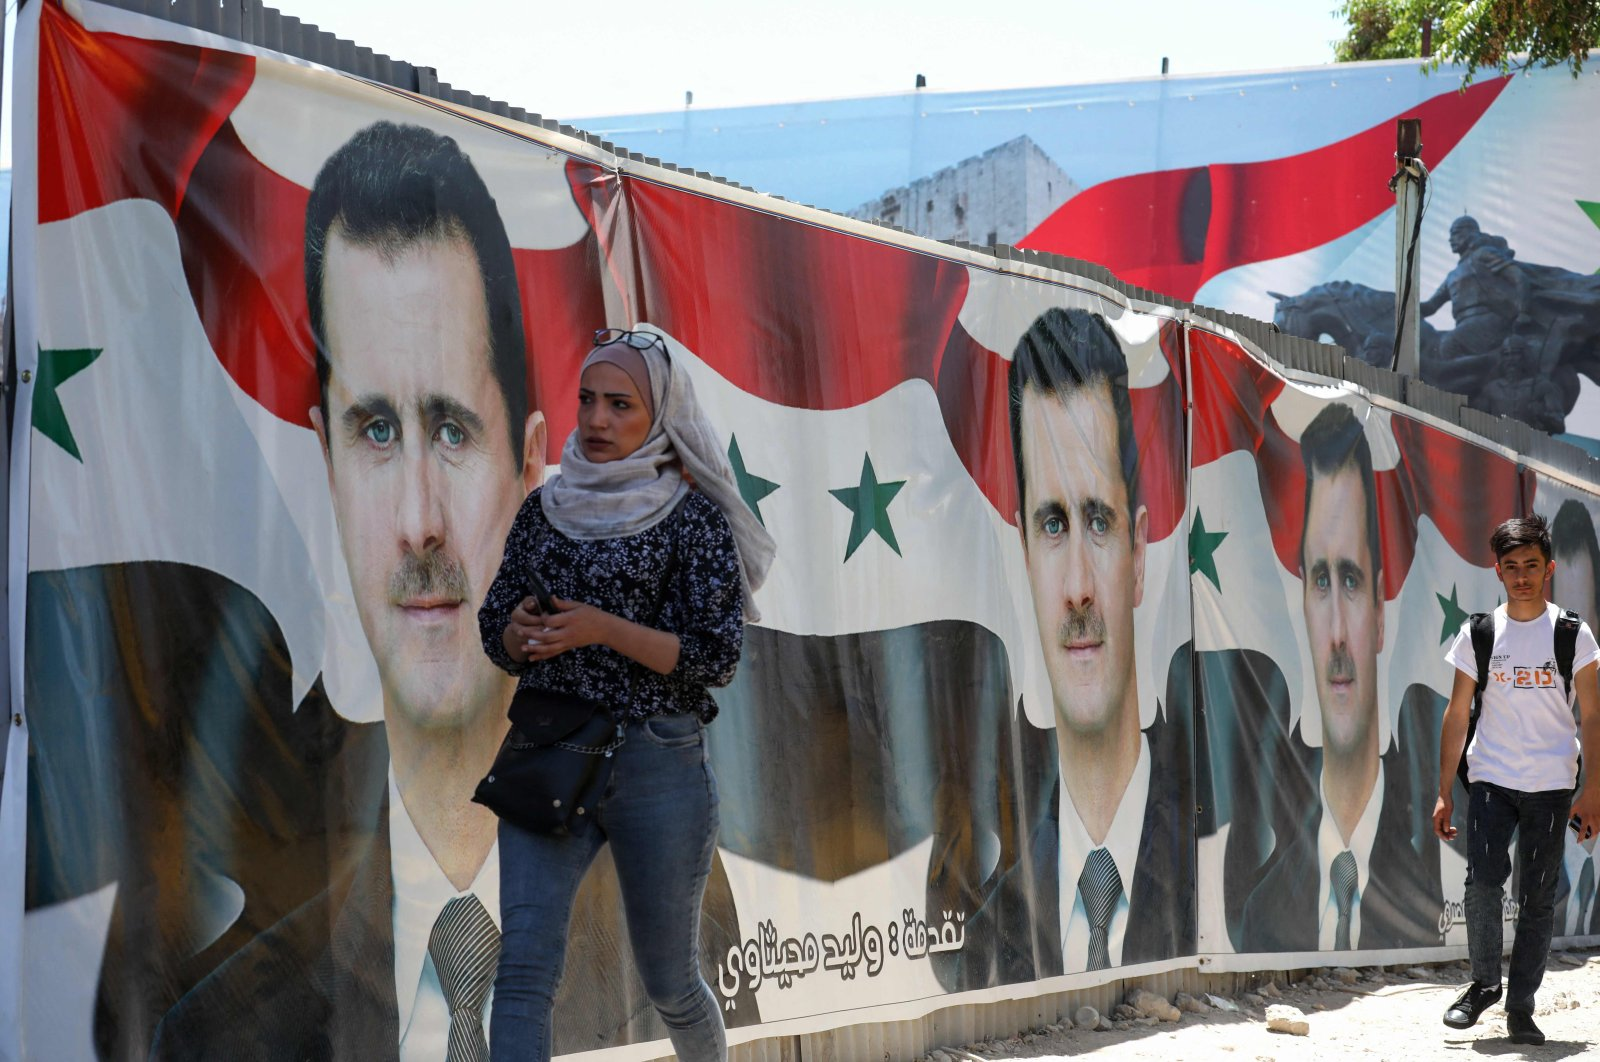 People walk past election campaign billboards depicting Bashar al-Assad, in the capital Damascus, Syria, on May 25, 2021. (AFP Photo)